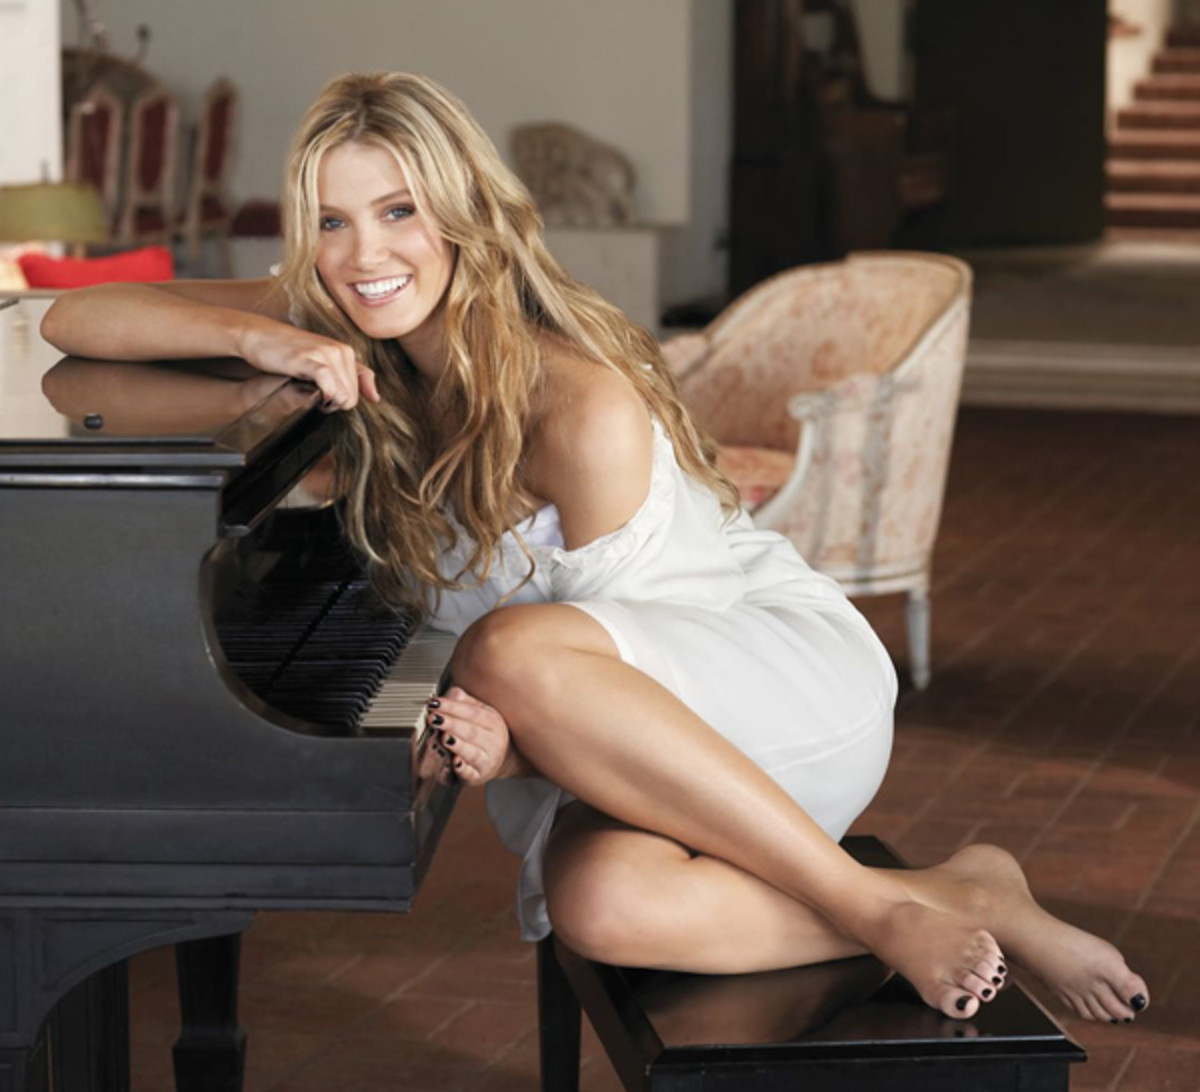 Delta Goodrem bound to capture fans with her voice and looks.